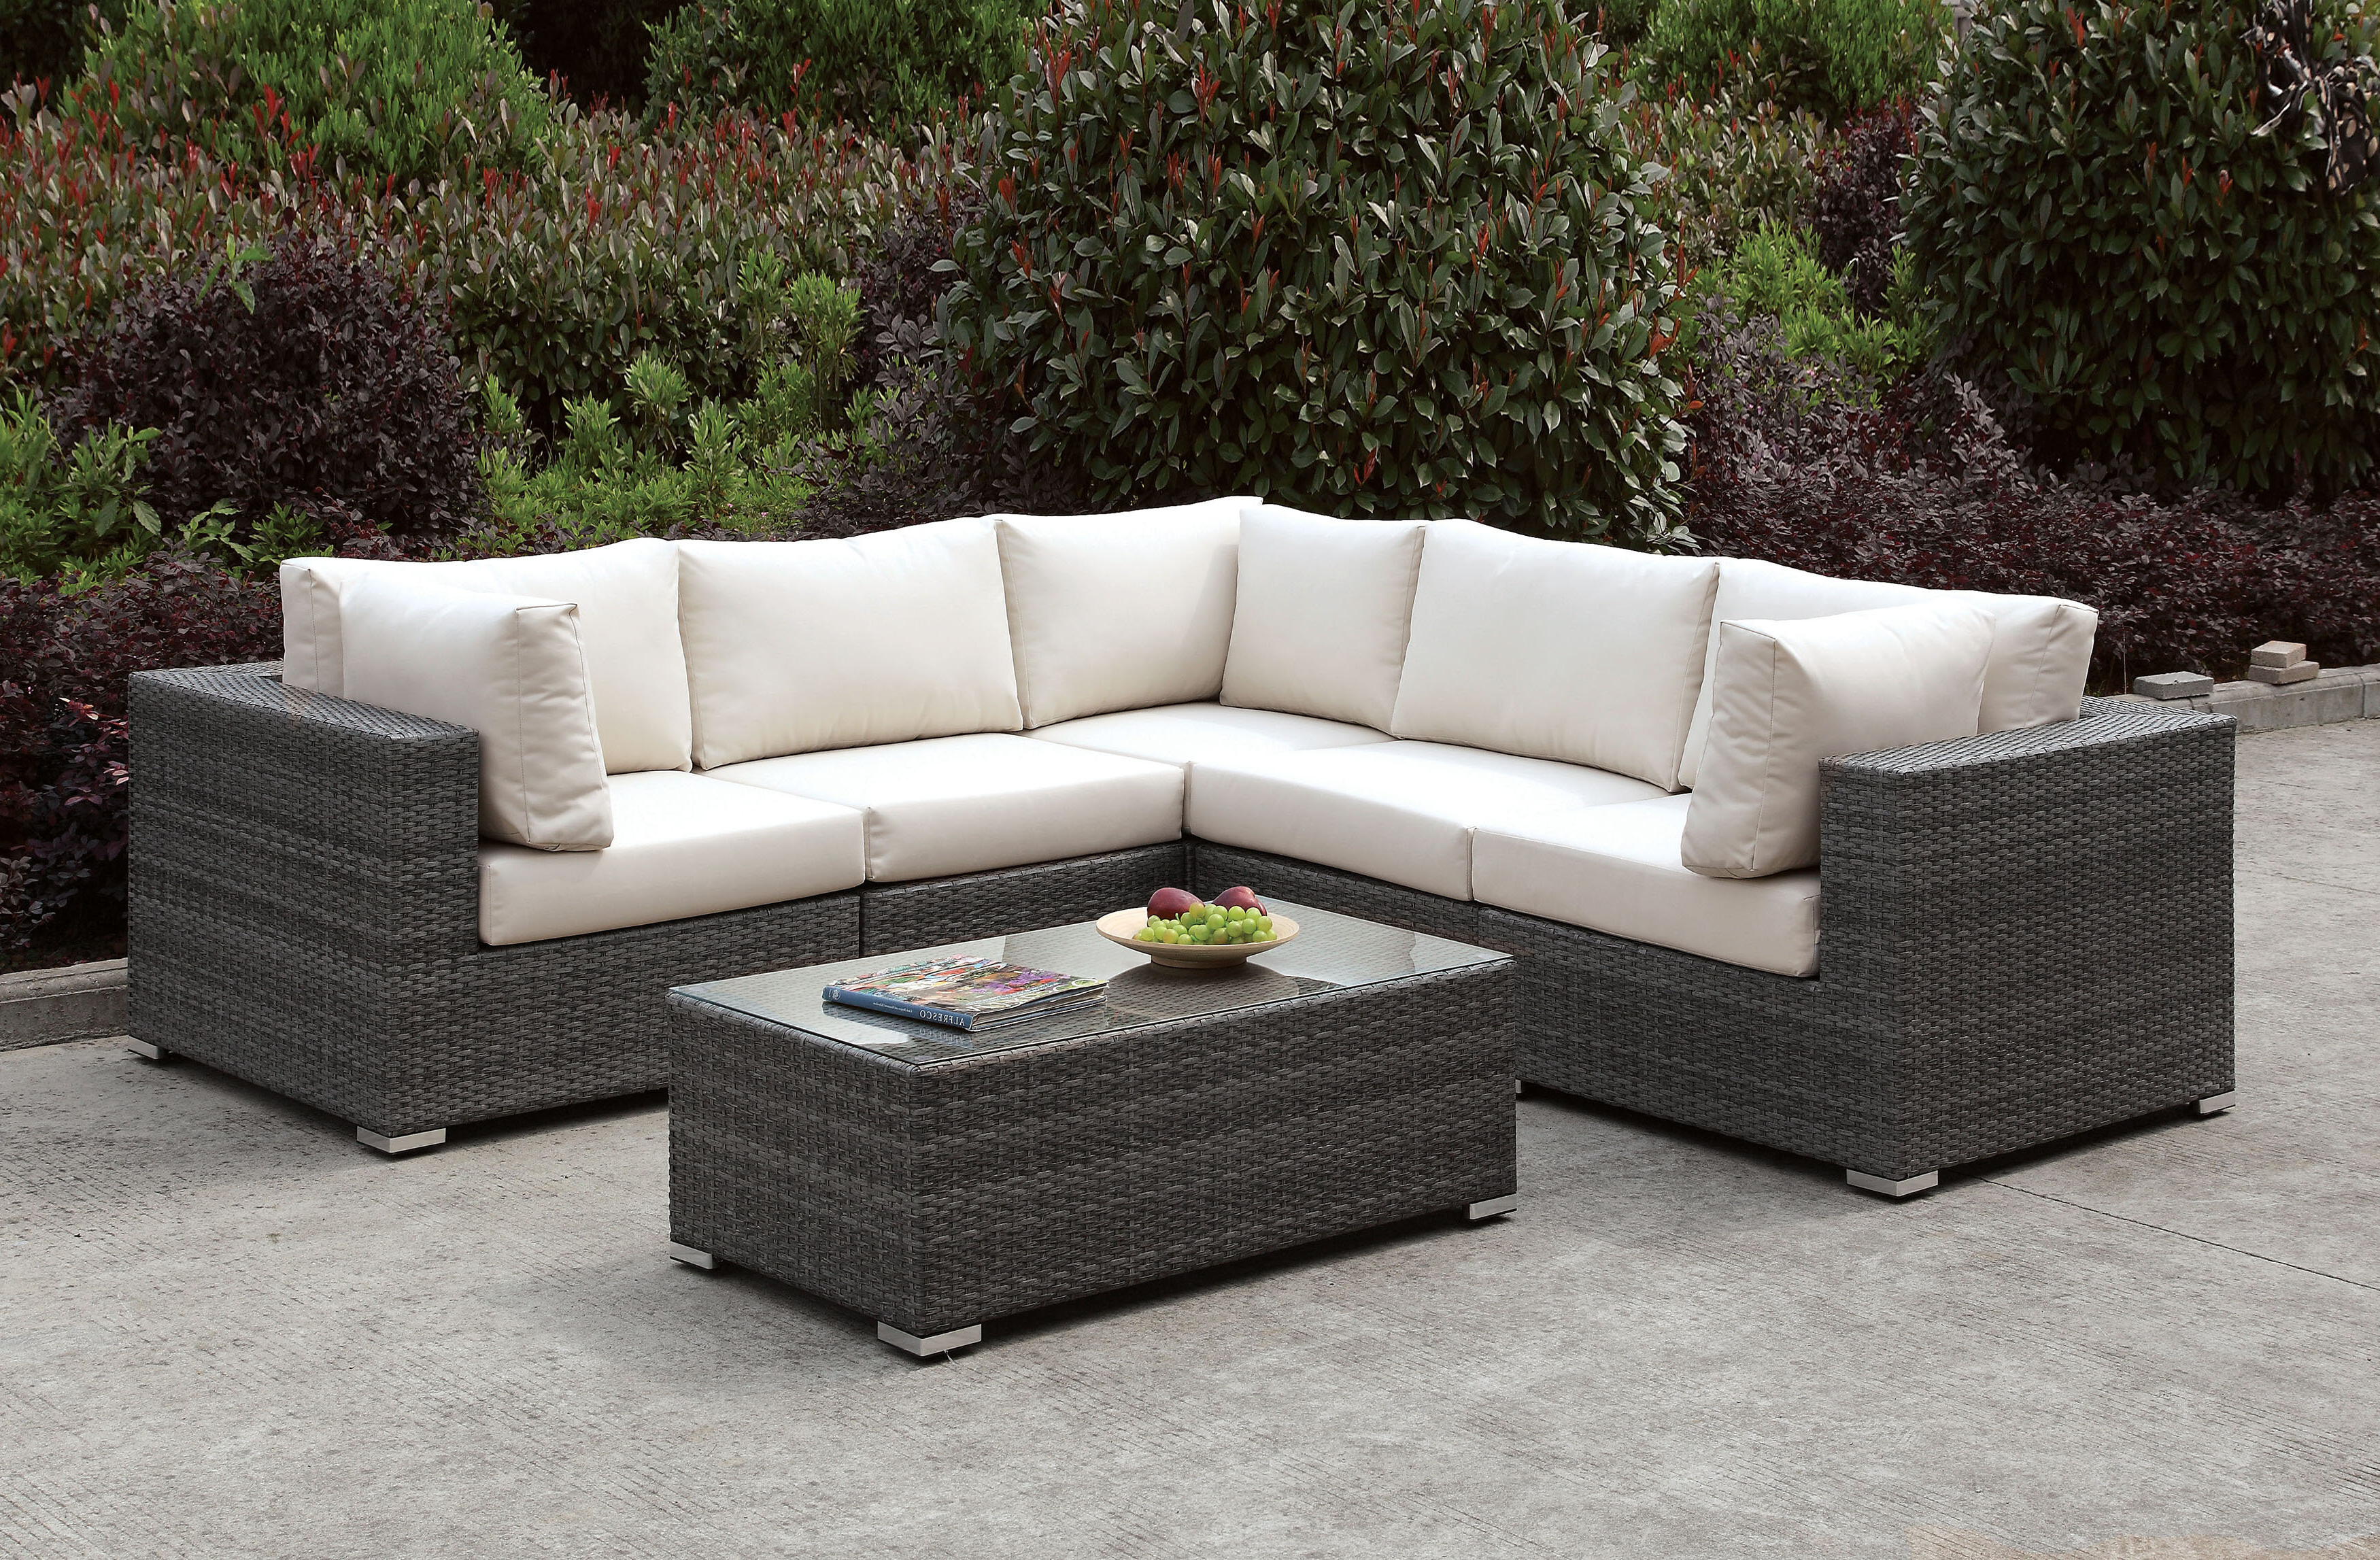 Nolen Patio Sectionals With Cushions With Regard To Popular Peters 7 Piece Patio Sectional With Cushions (View 13 of 20)